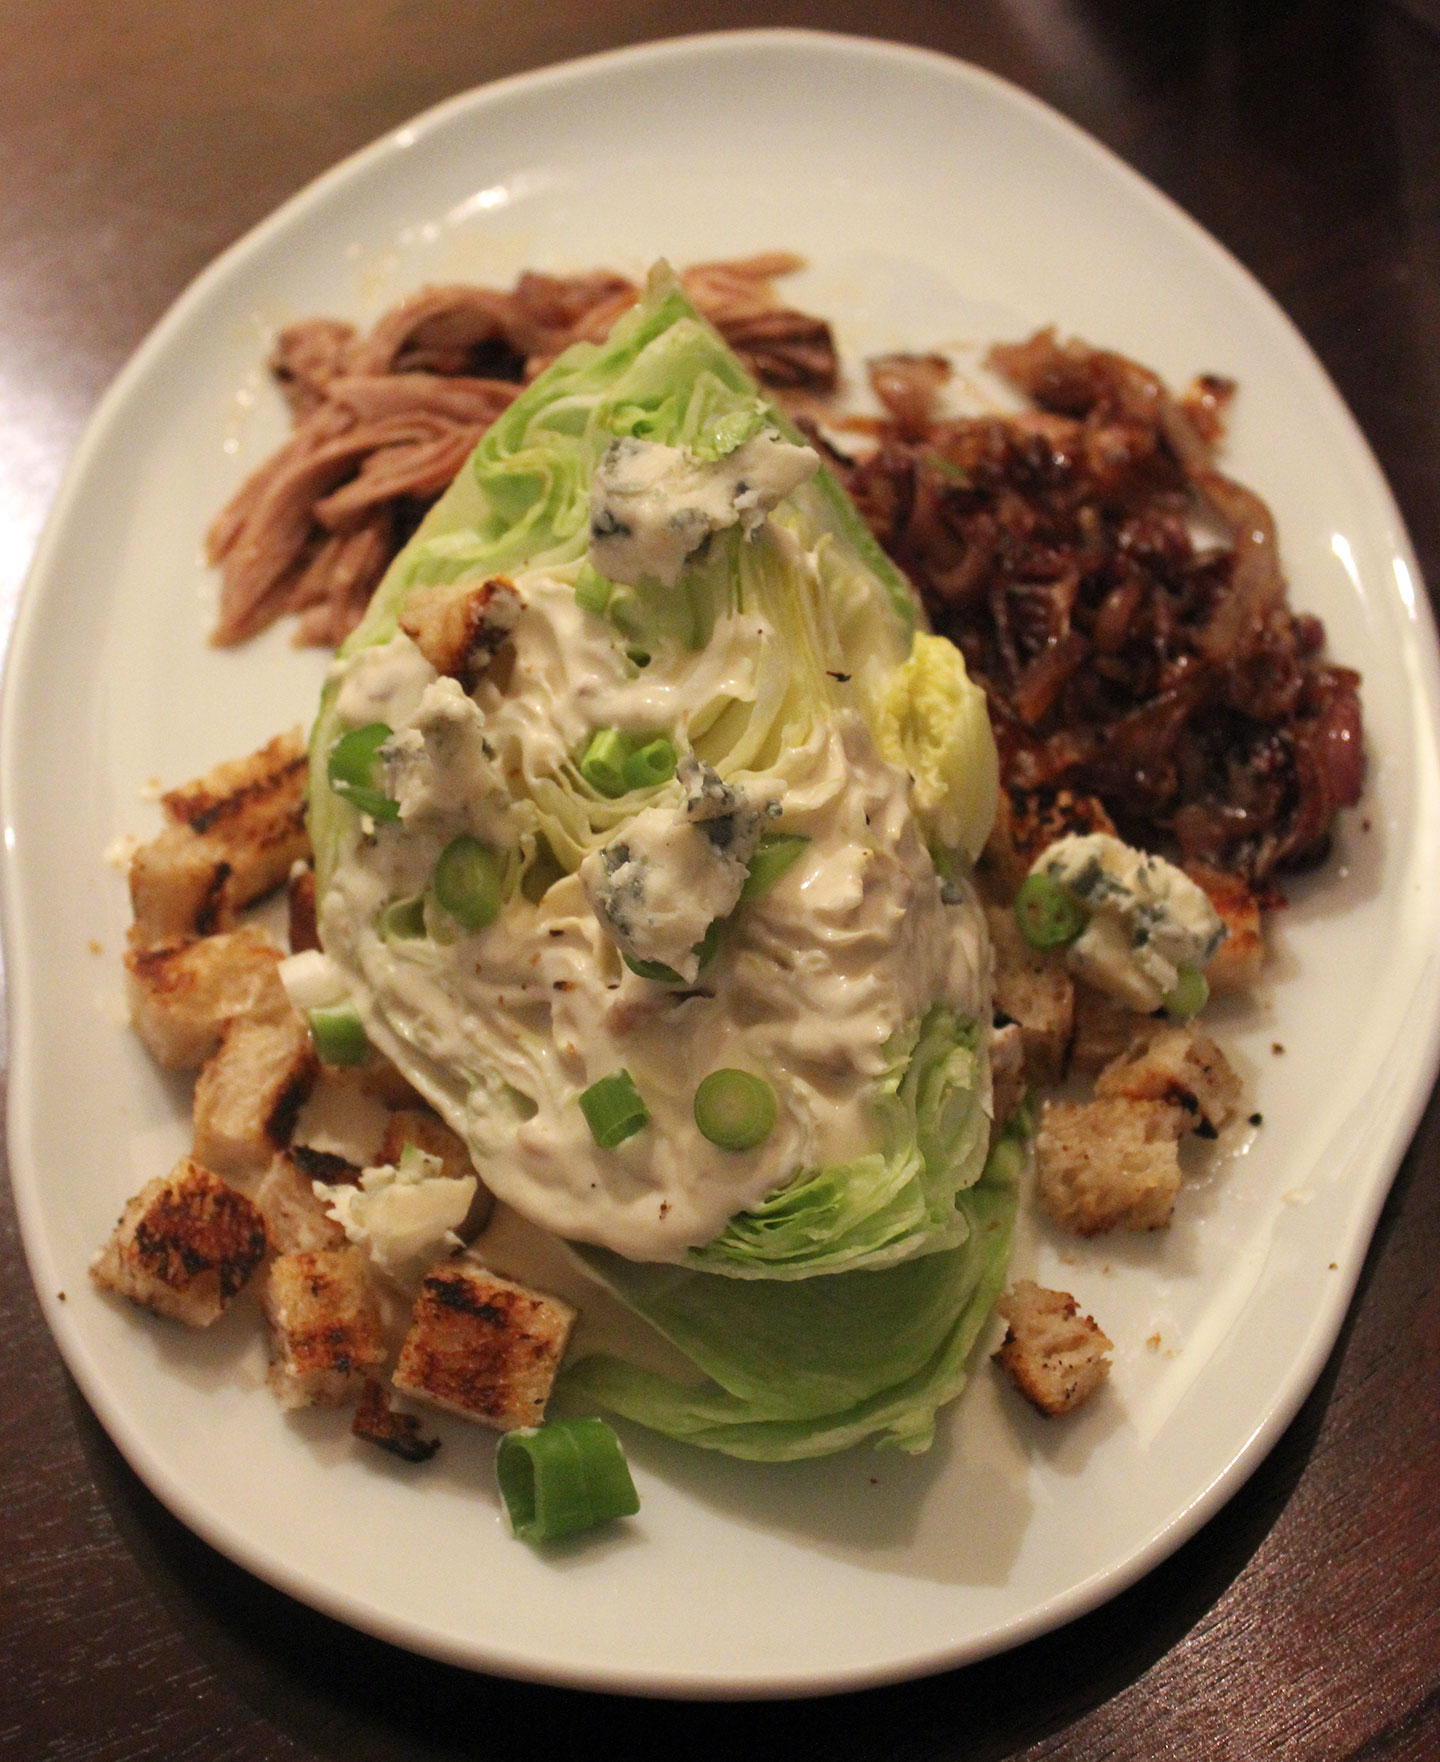 TBT Recipe: Iceberg Salad with Pulled Pork